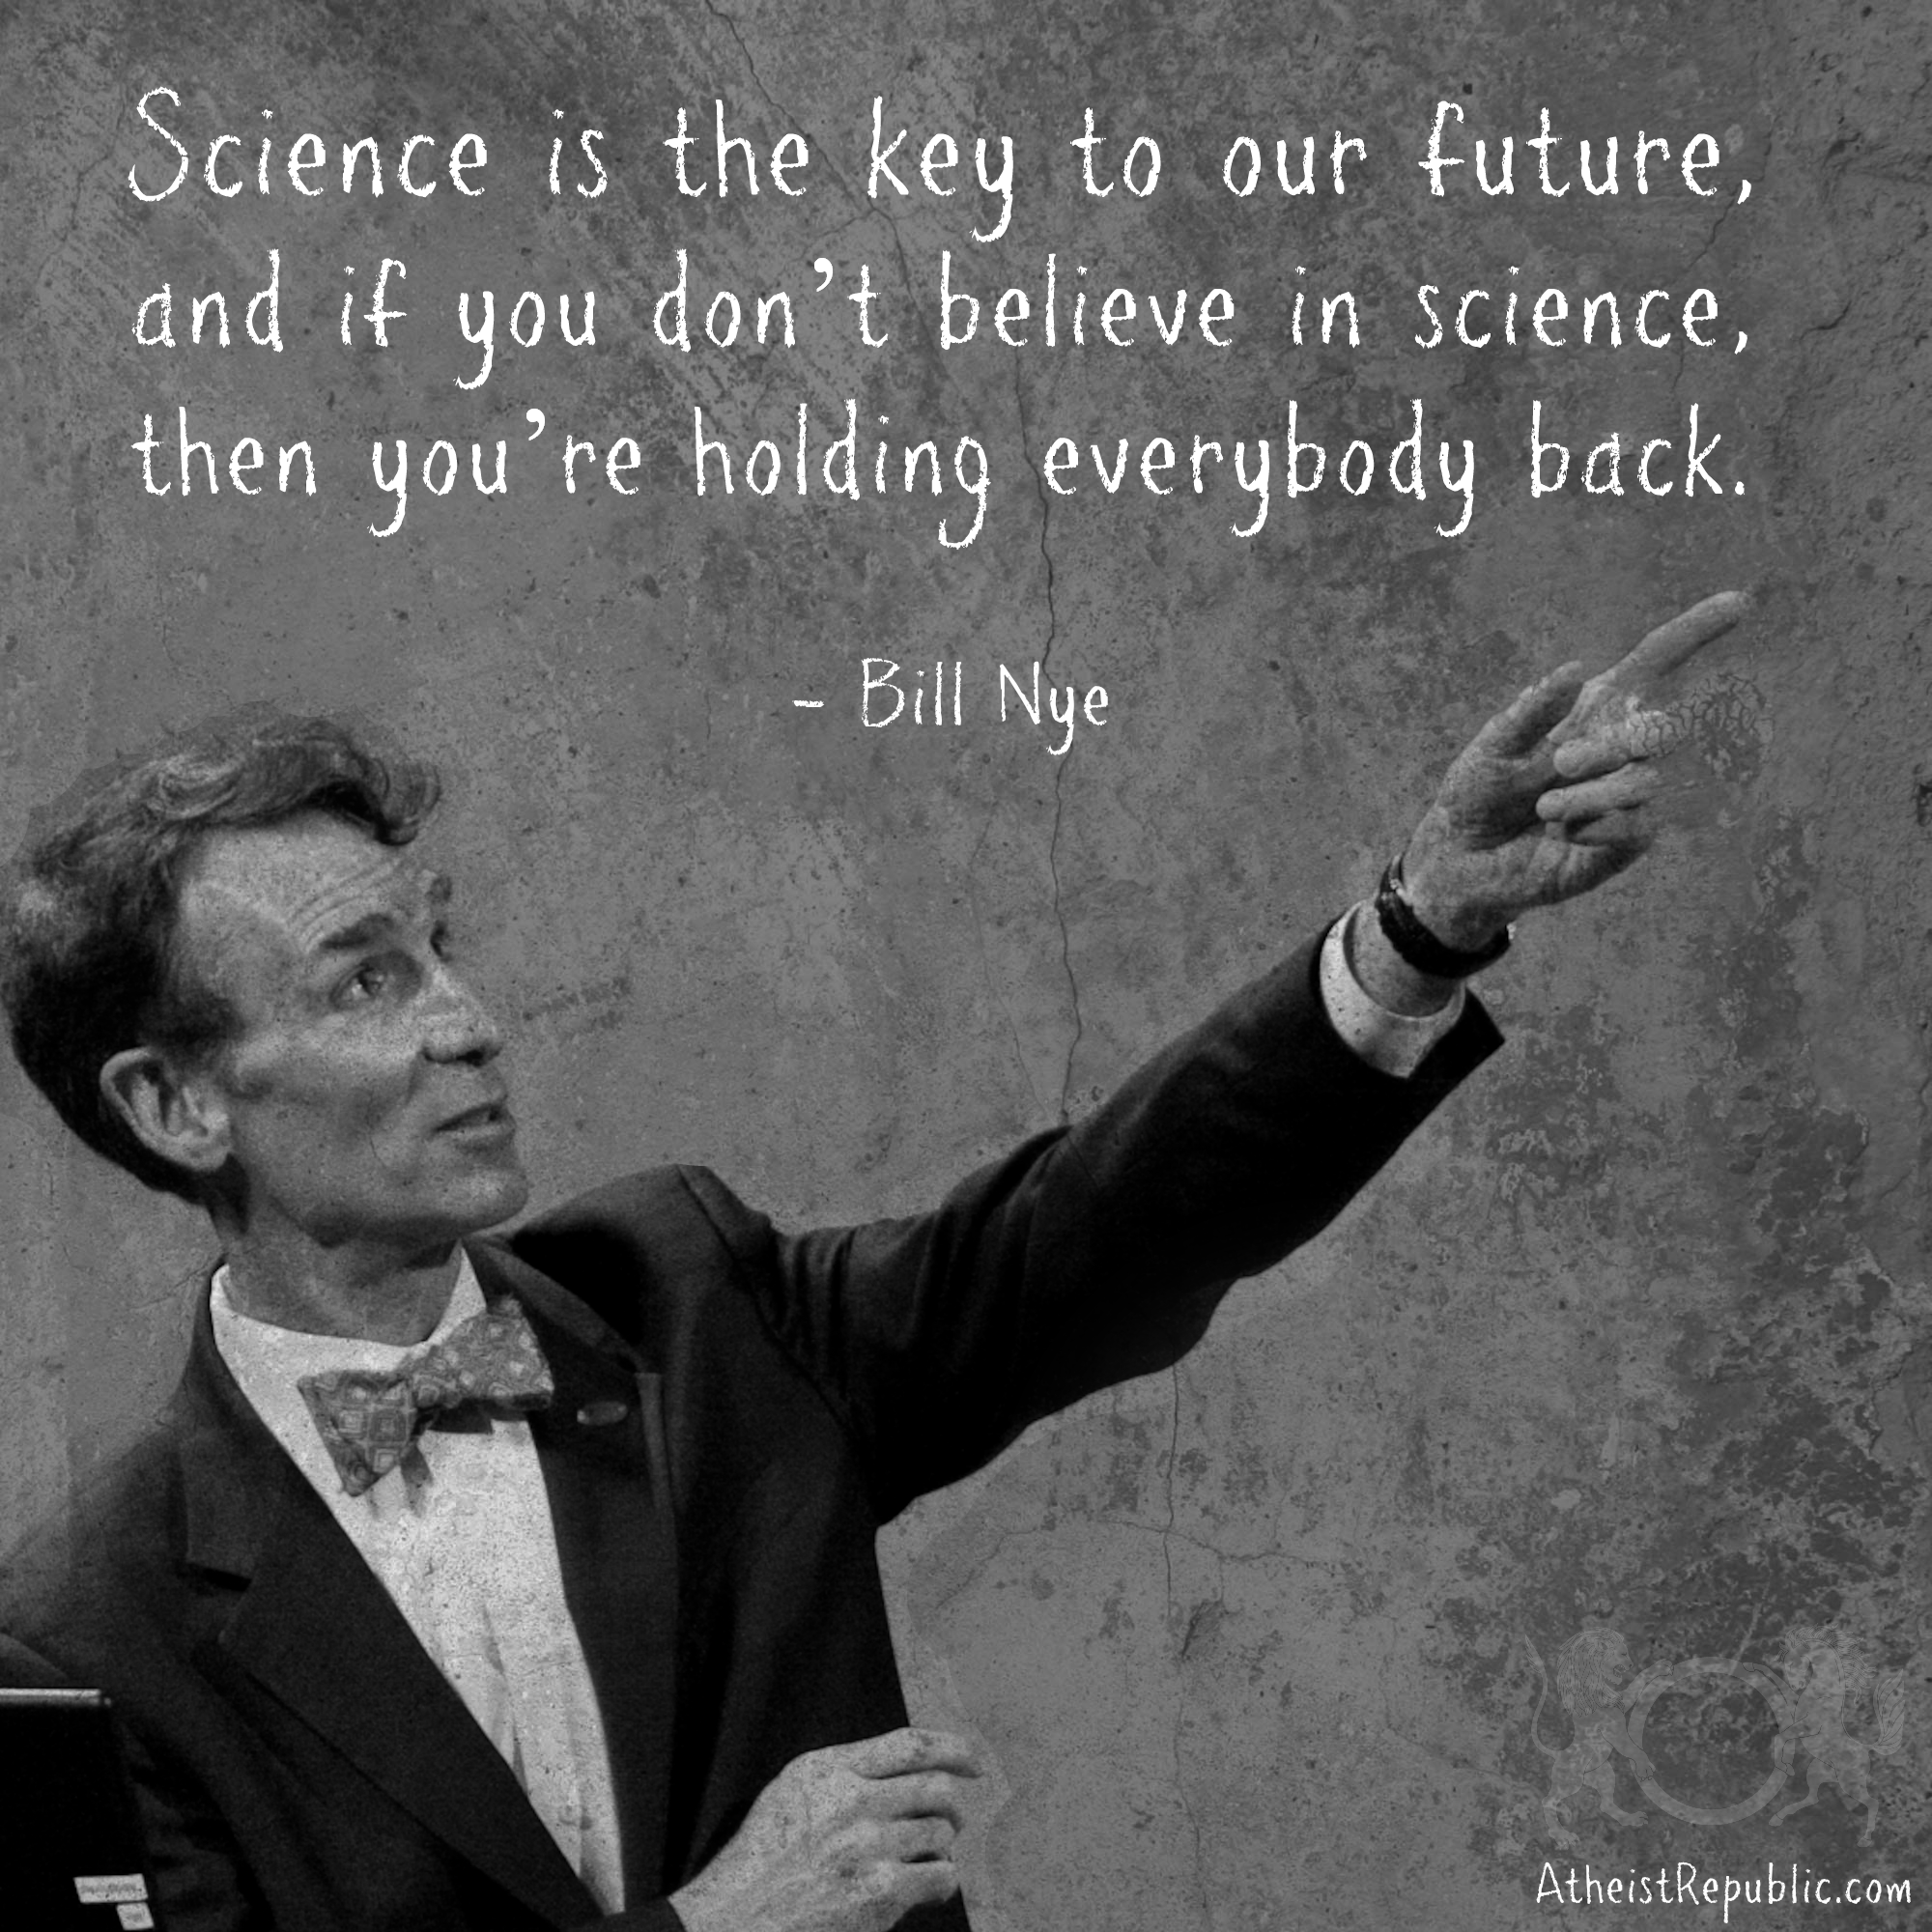 Scientist Quotes If You Don't Believe In Science Then You're Holding Everybody